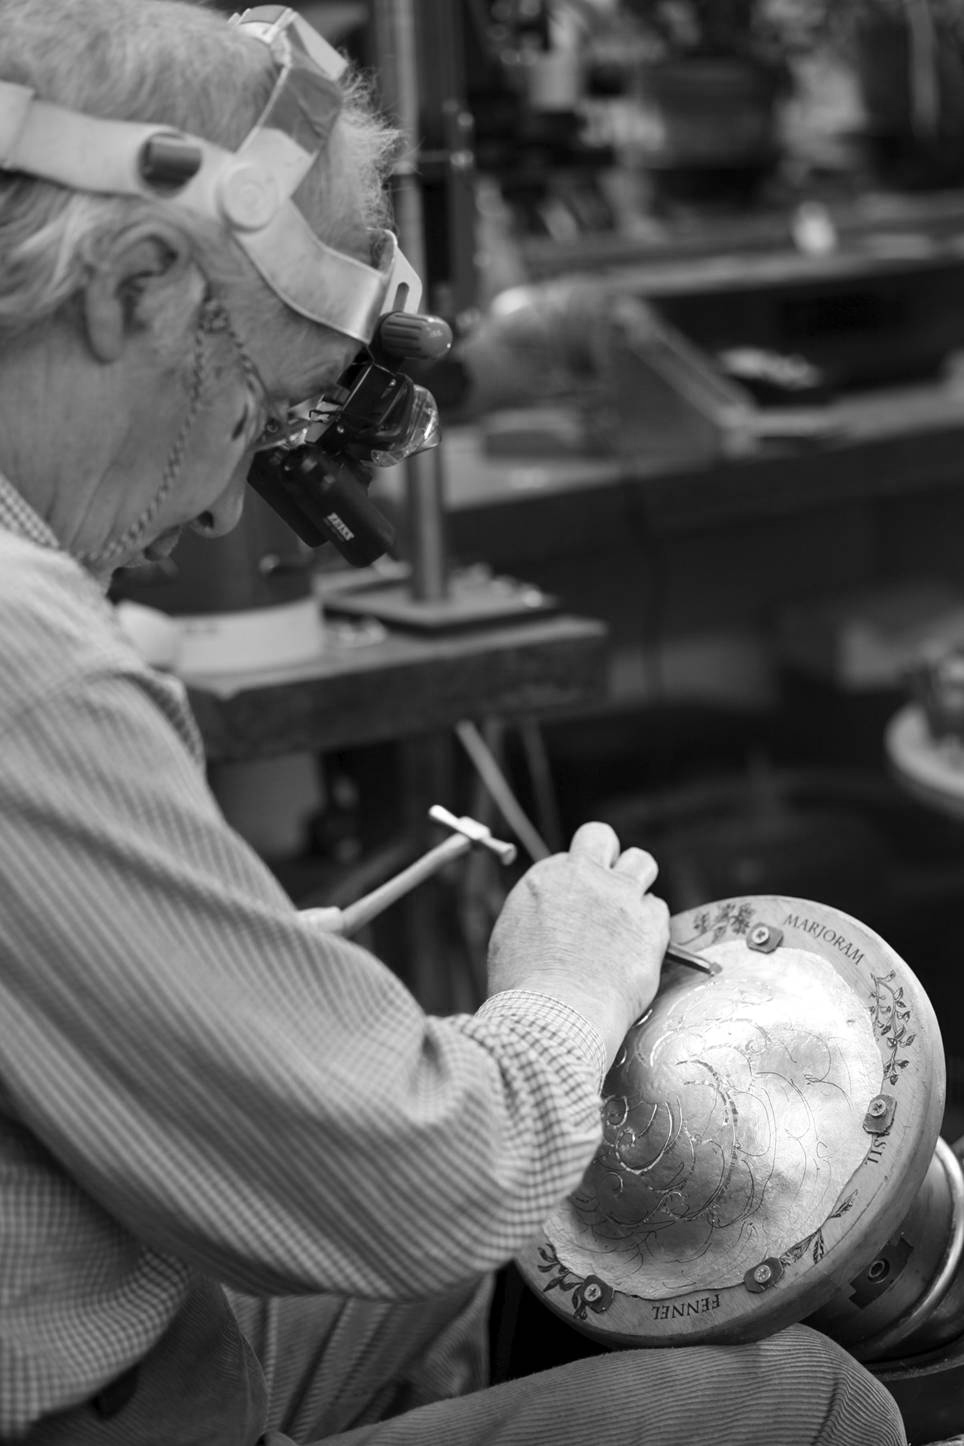 Malcolm Appleby in his workshop in Grandtully Perthshire, Scotland